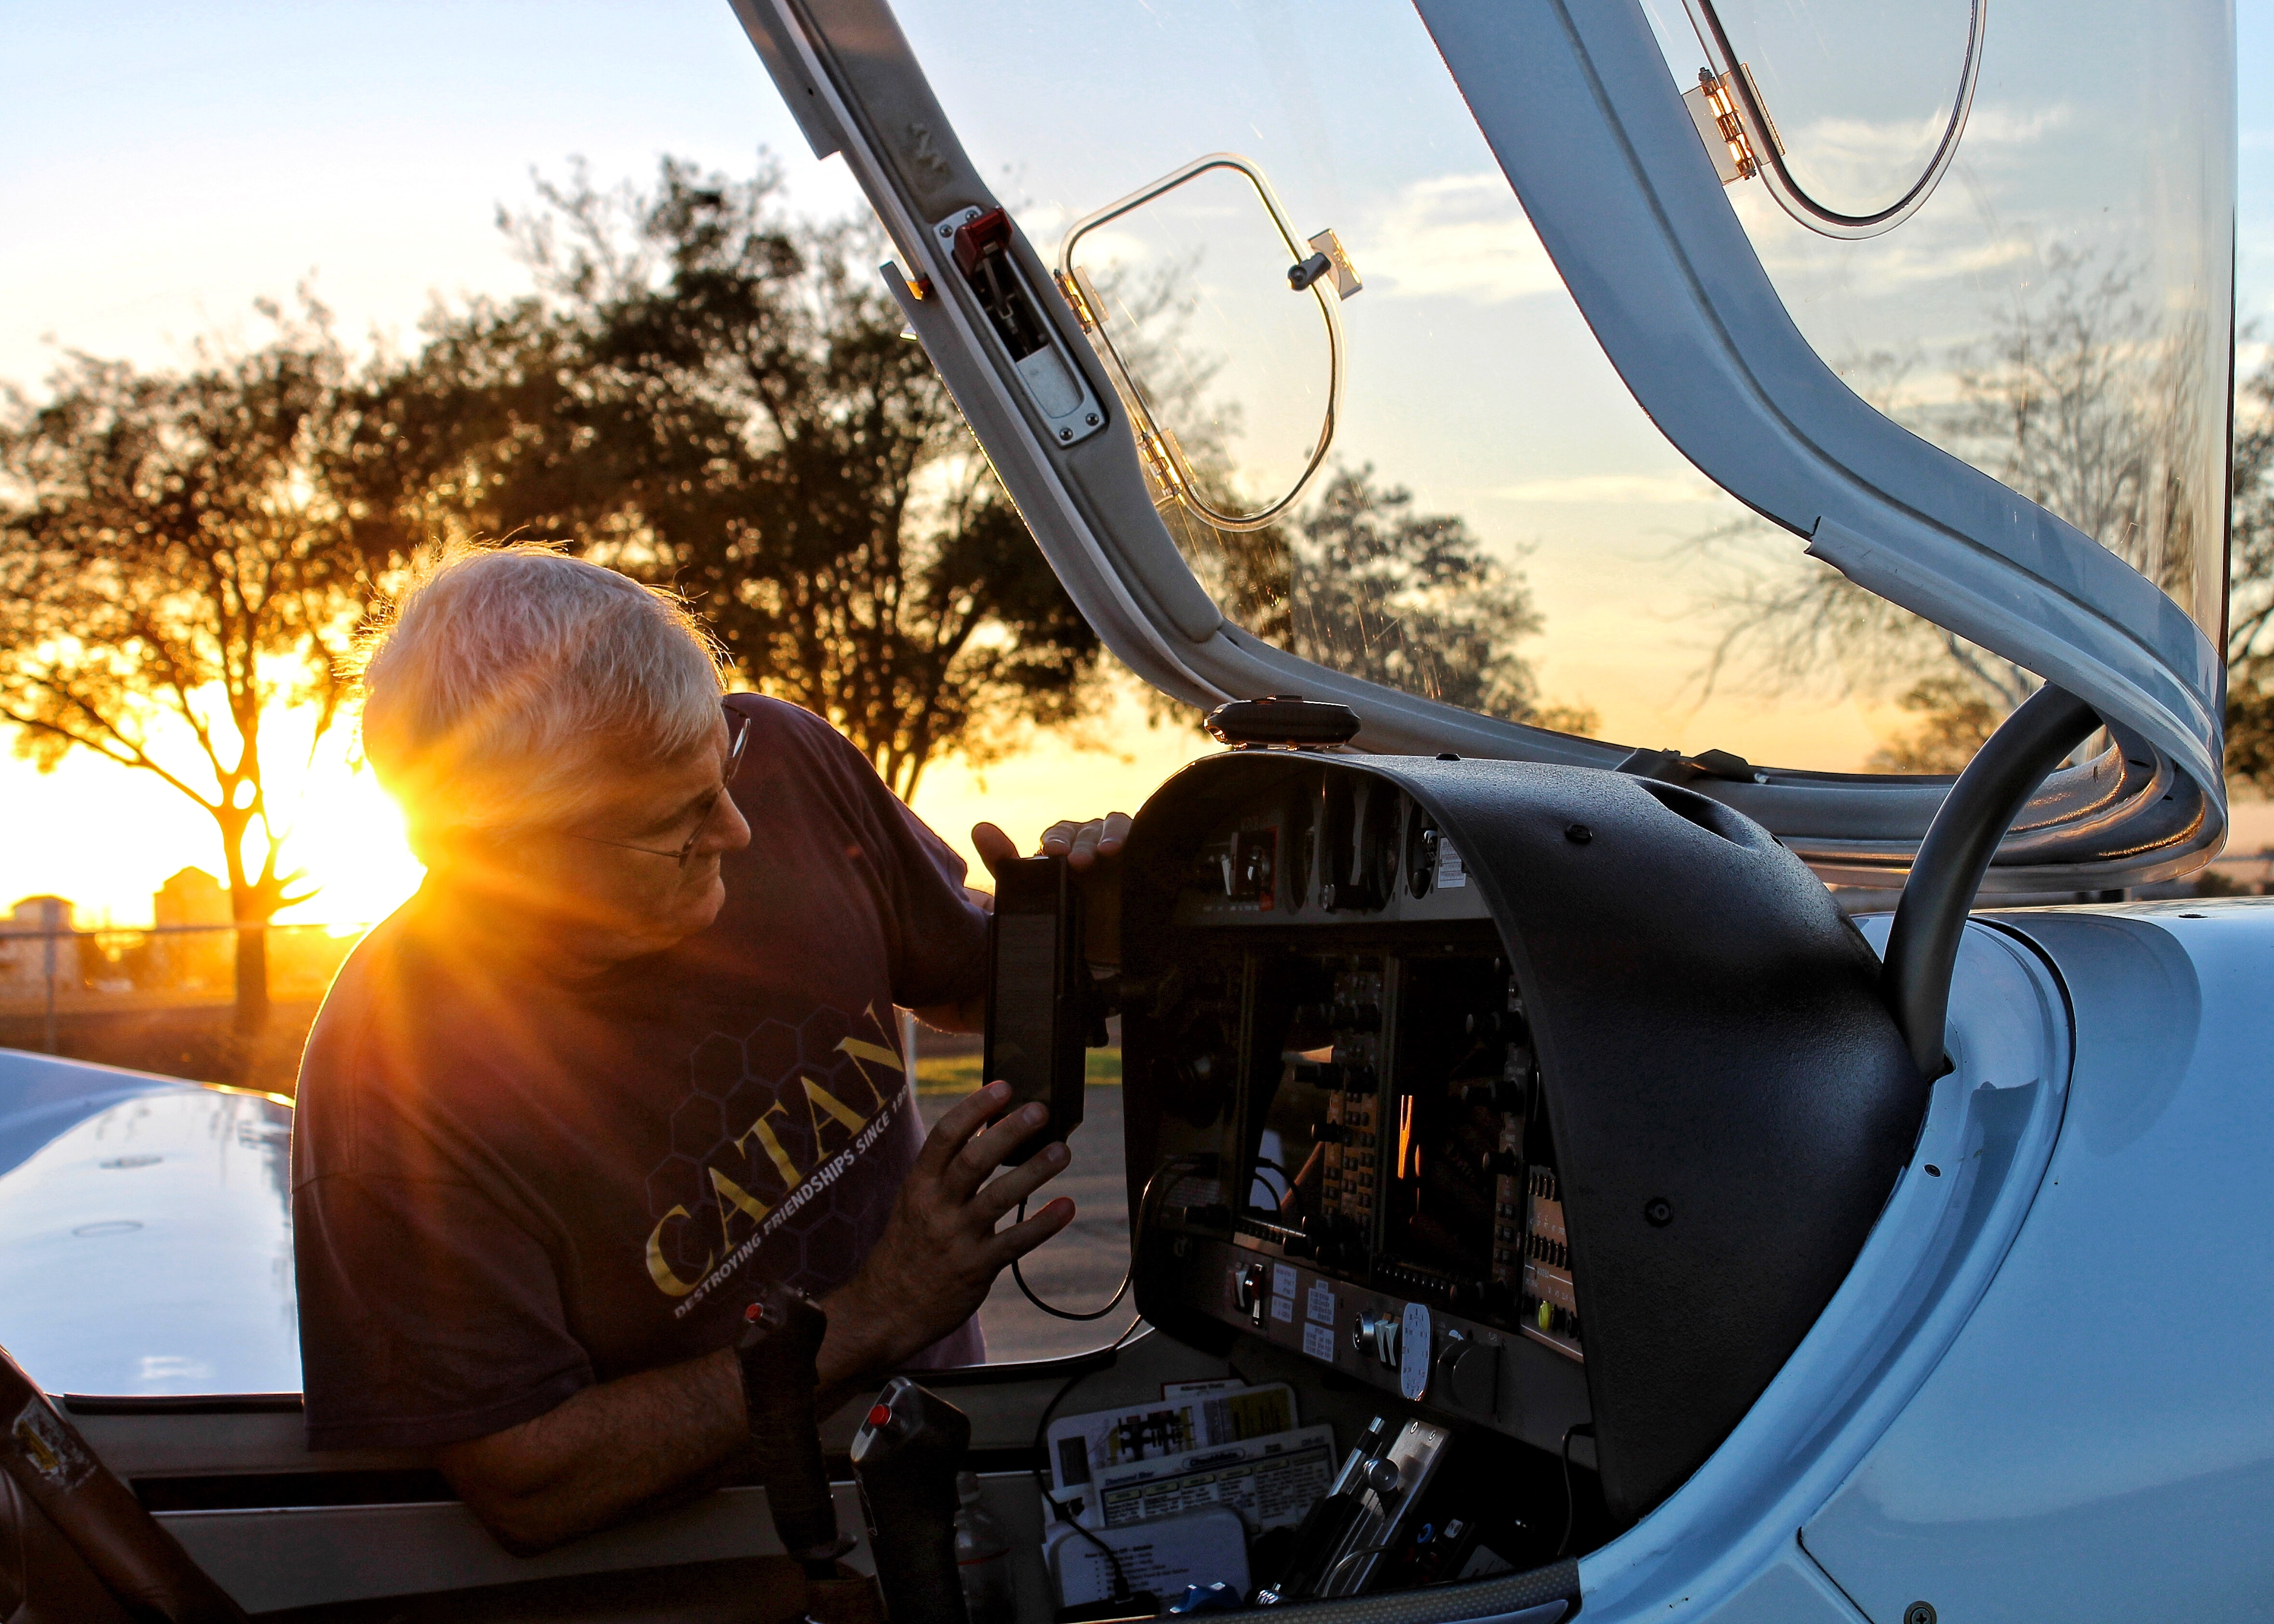 A man inspecting the equipment of a plane at Los Banos Municipal Airport during sunset